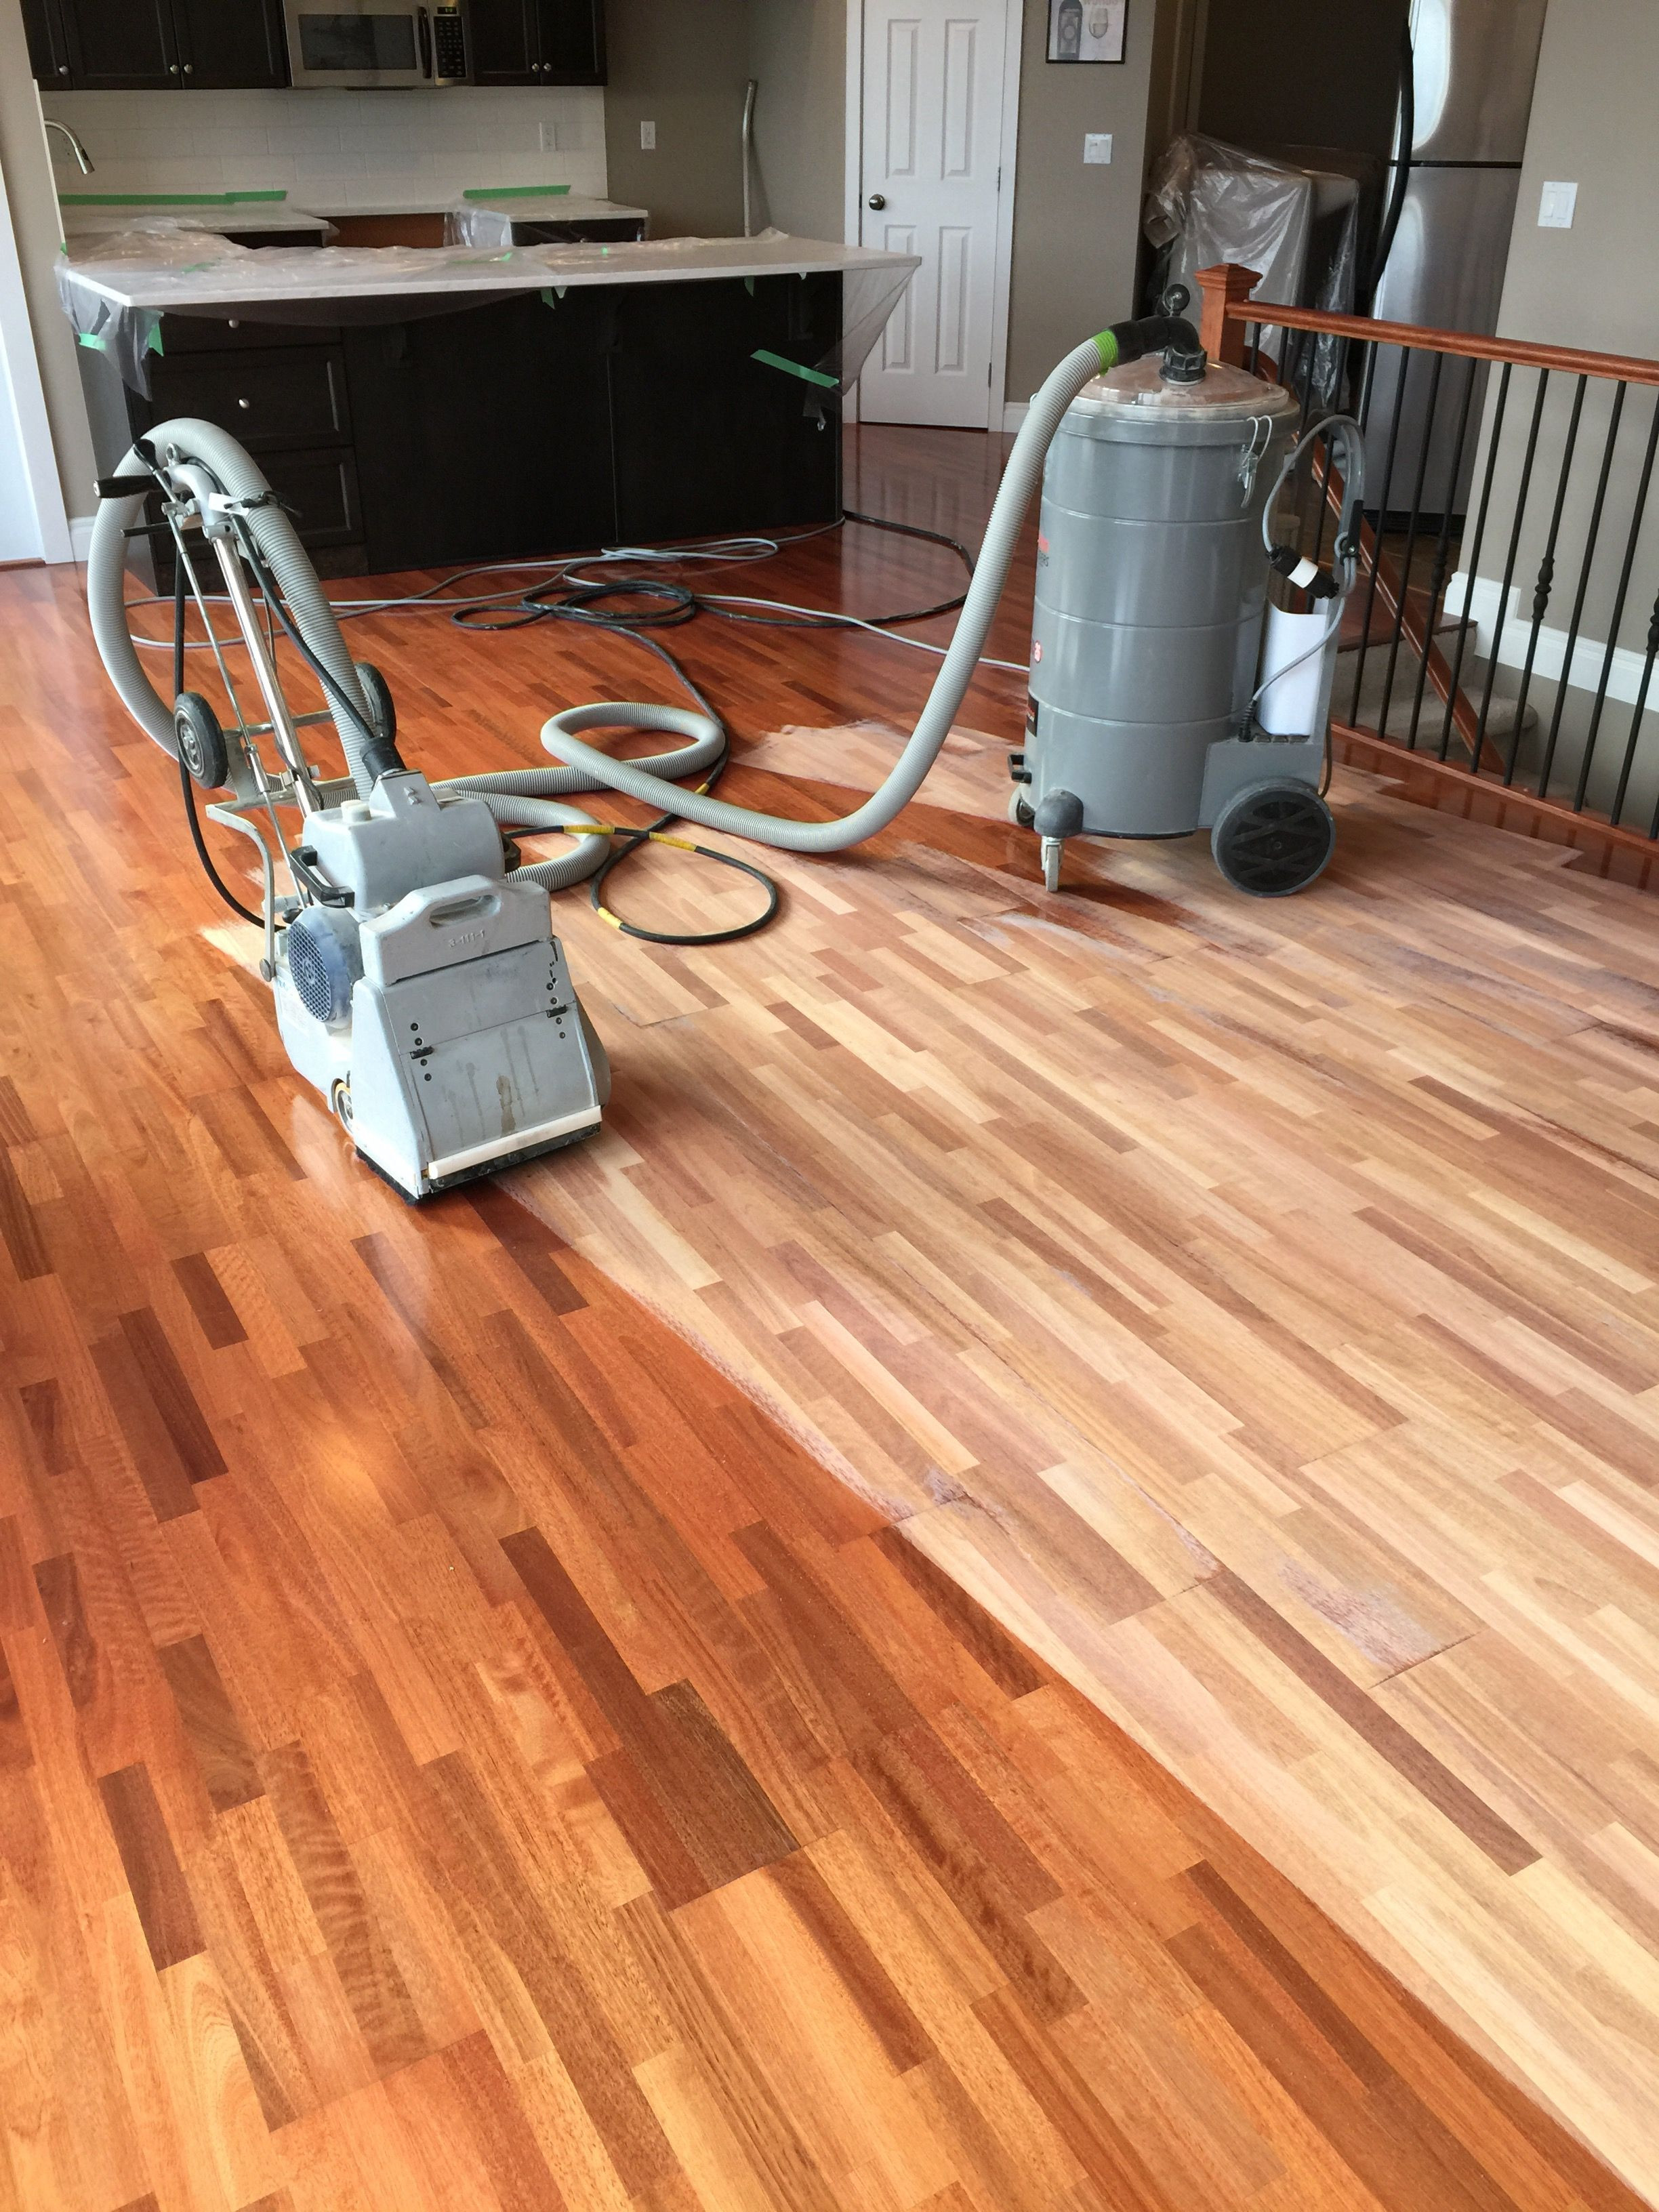 Resurfacing Vs Refinishing Hardwood Floors Of Floor Refinishing Company Hardwood Floors Service by Cris Floor Pertaining to Floor Refinishing Company Evergreen Hardwood Floors Ensure that Your Hardwood Floor Floor Refinishing Company Floor Sanding